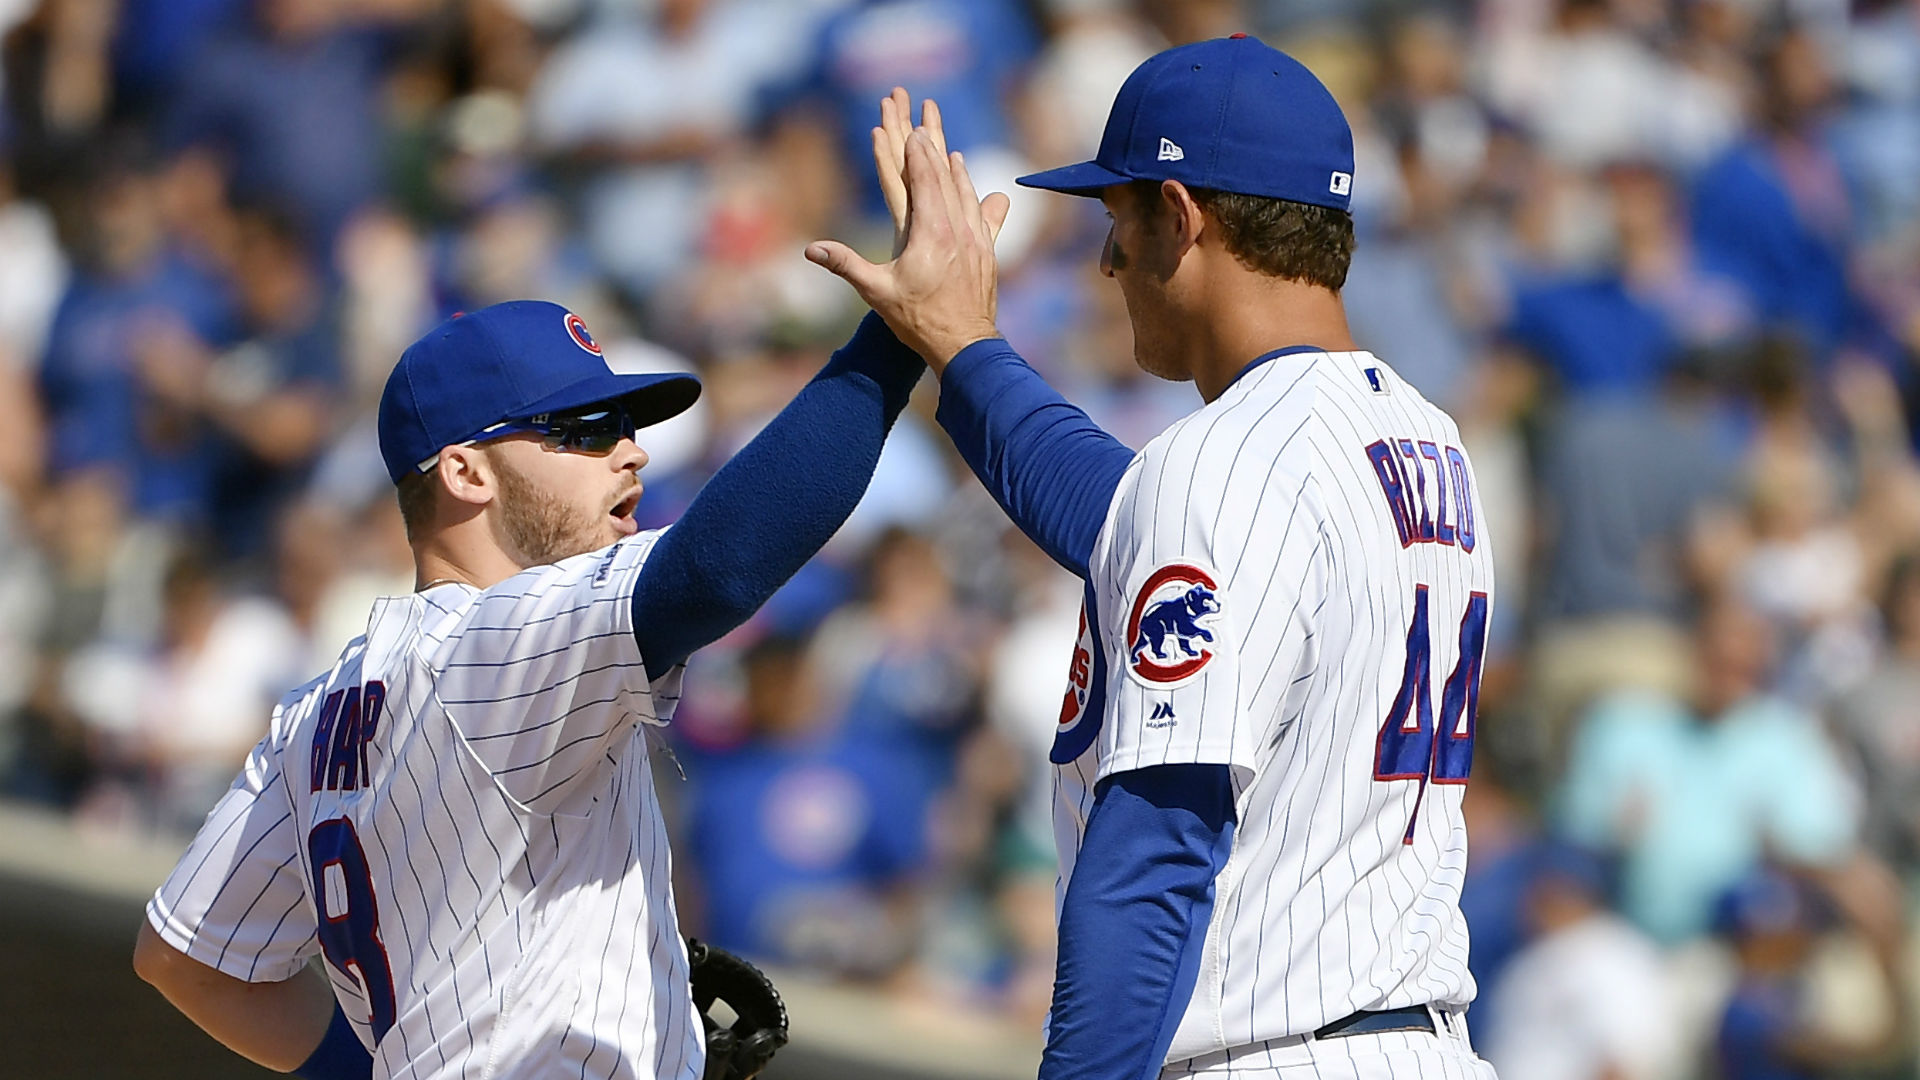 MLB wrap: Cubs finish 3-game sweep of Brewers to pad lead in tight NL Central race